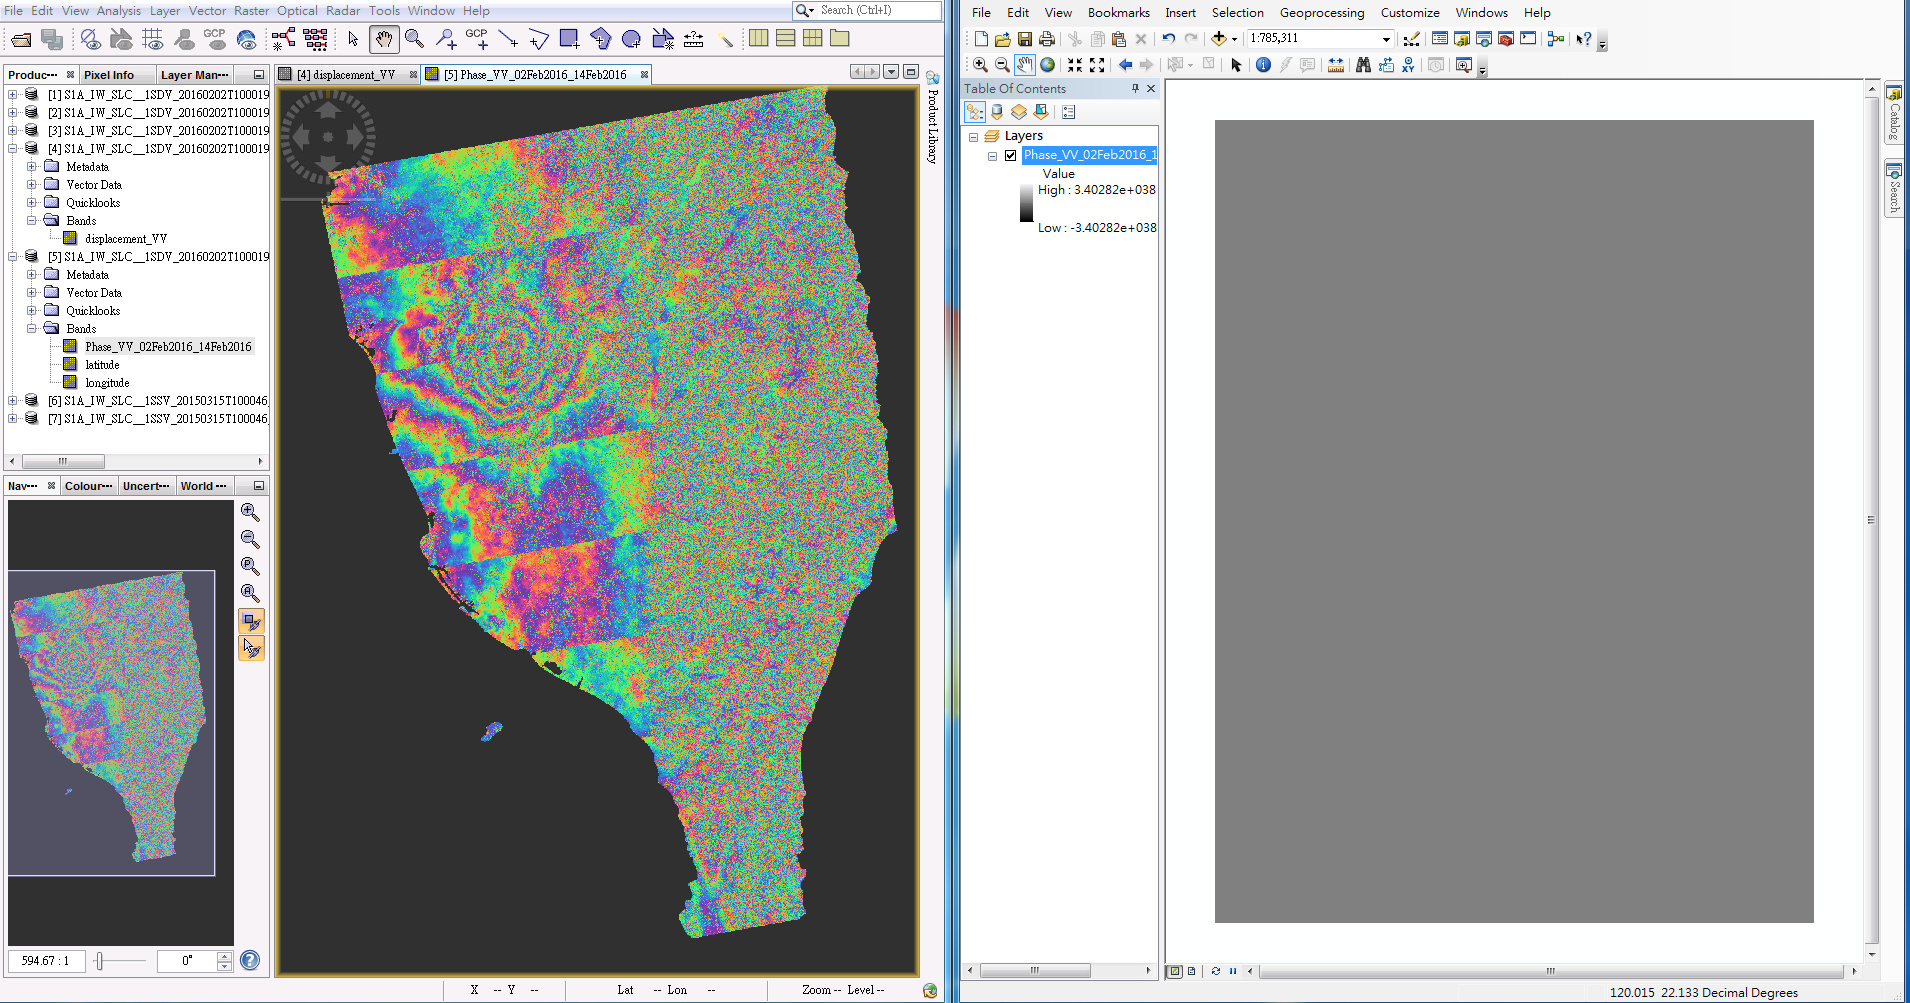 Exporting Files out of SNAP correctly for ArcMap